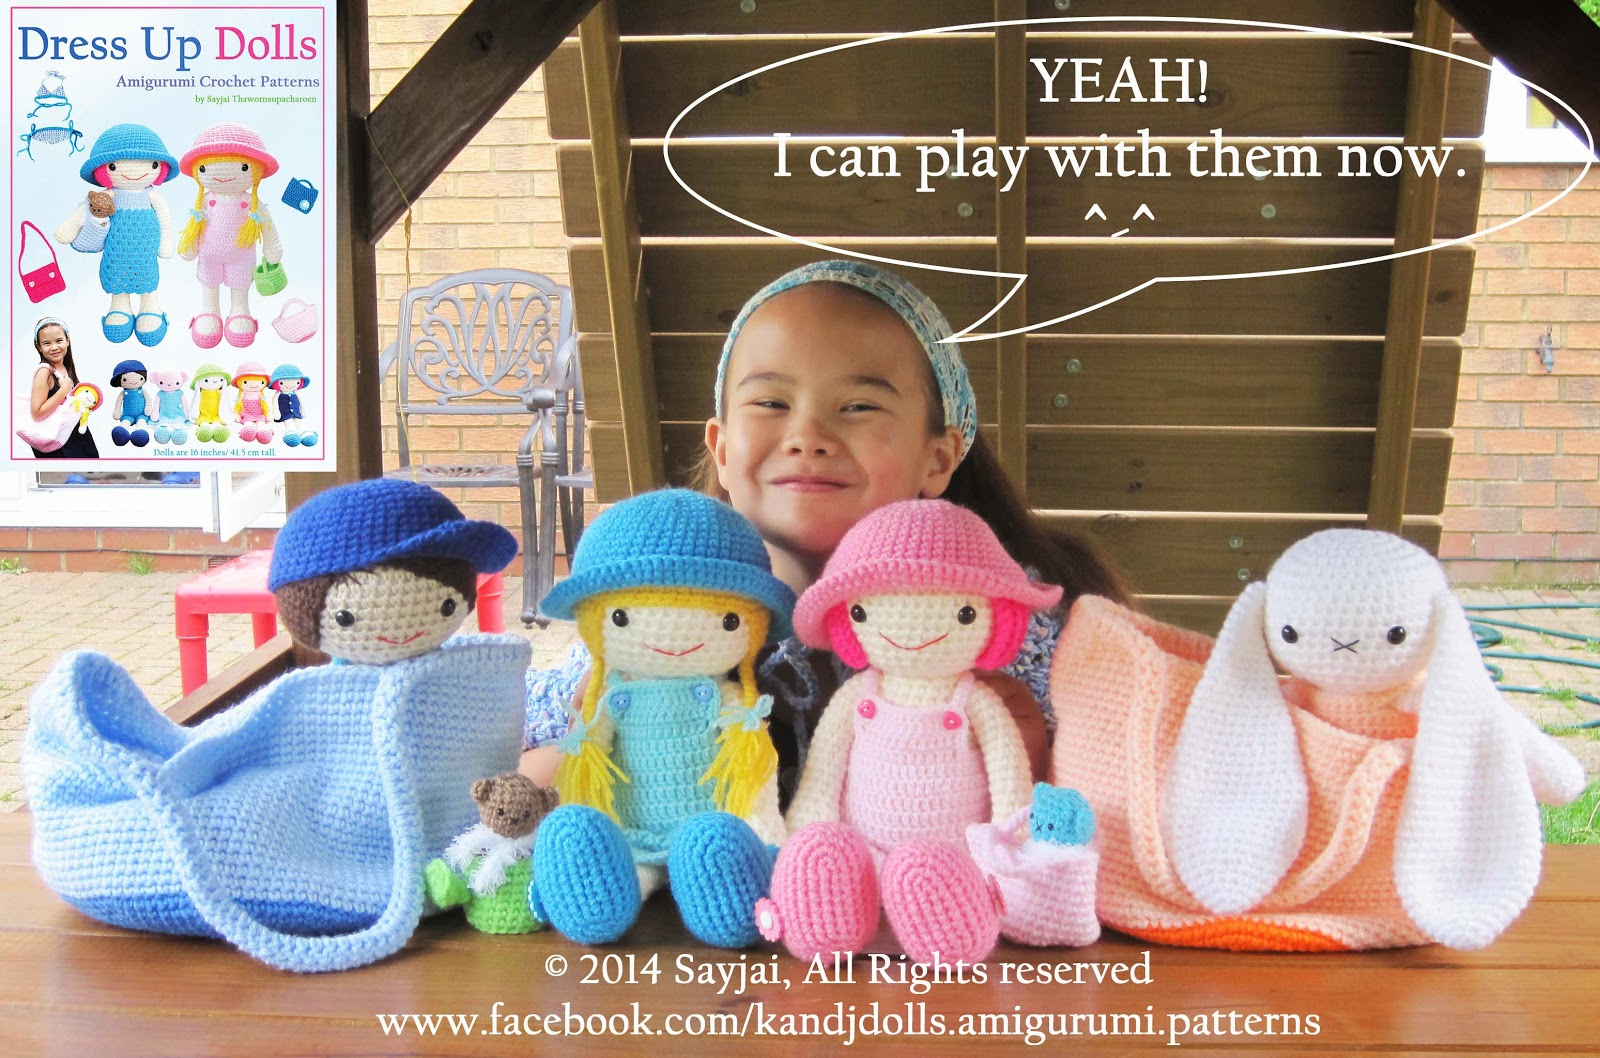 Amigurumi Crochet Books : Dress up dolls book will be available soon sayjai amigurumi